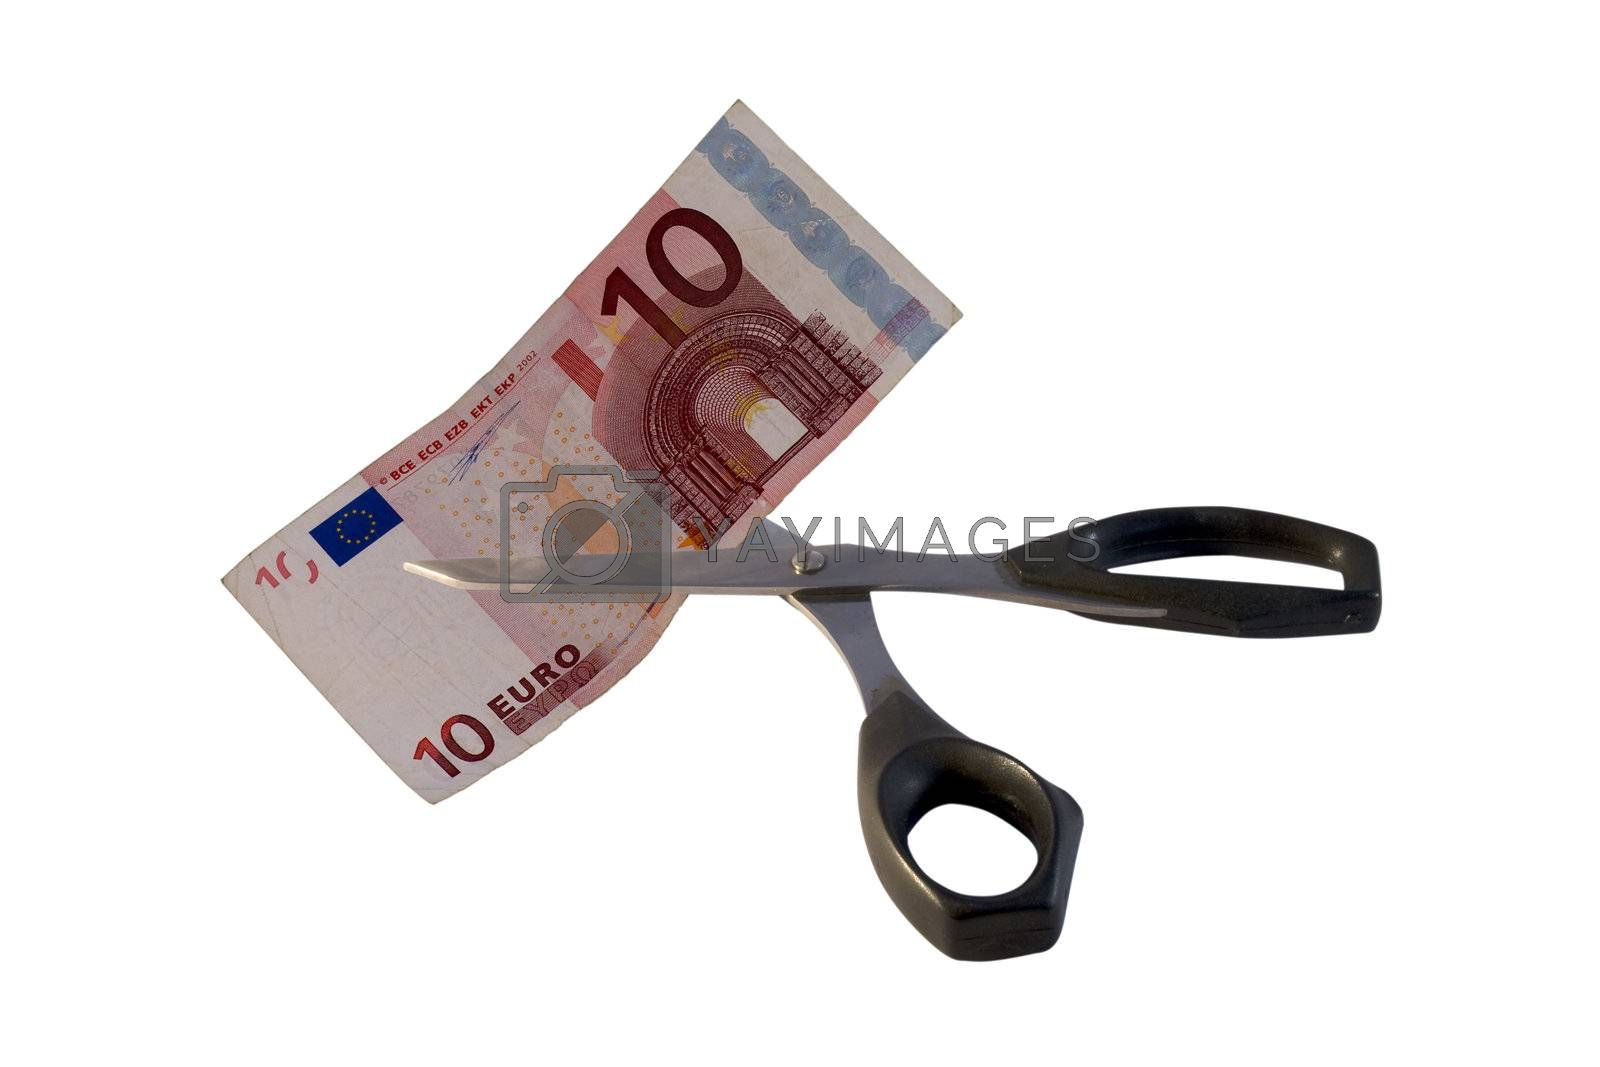 Royalty free image of Cutting money by Koufax73